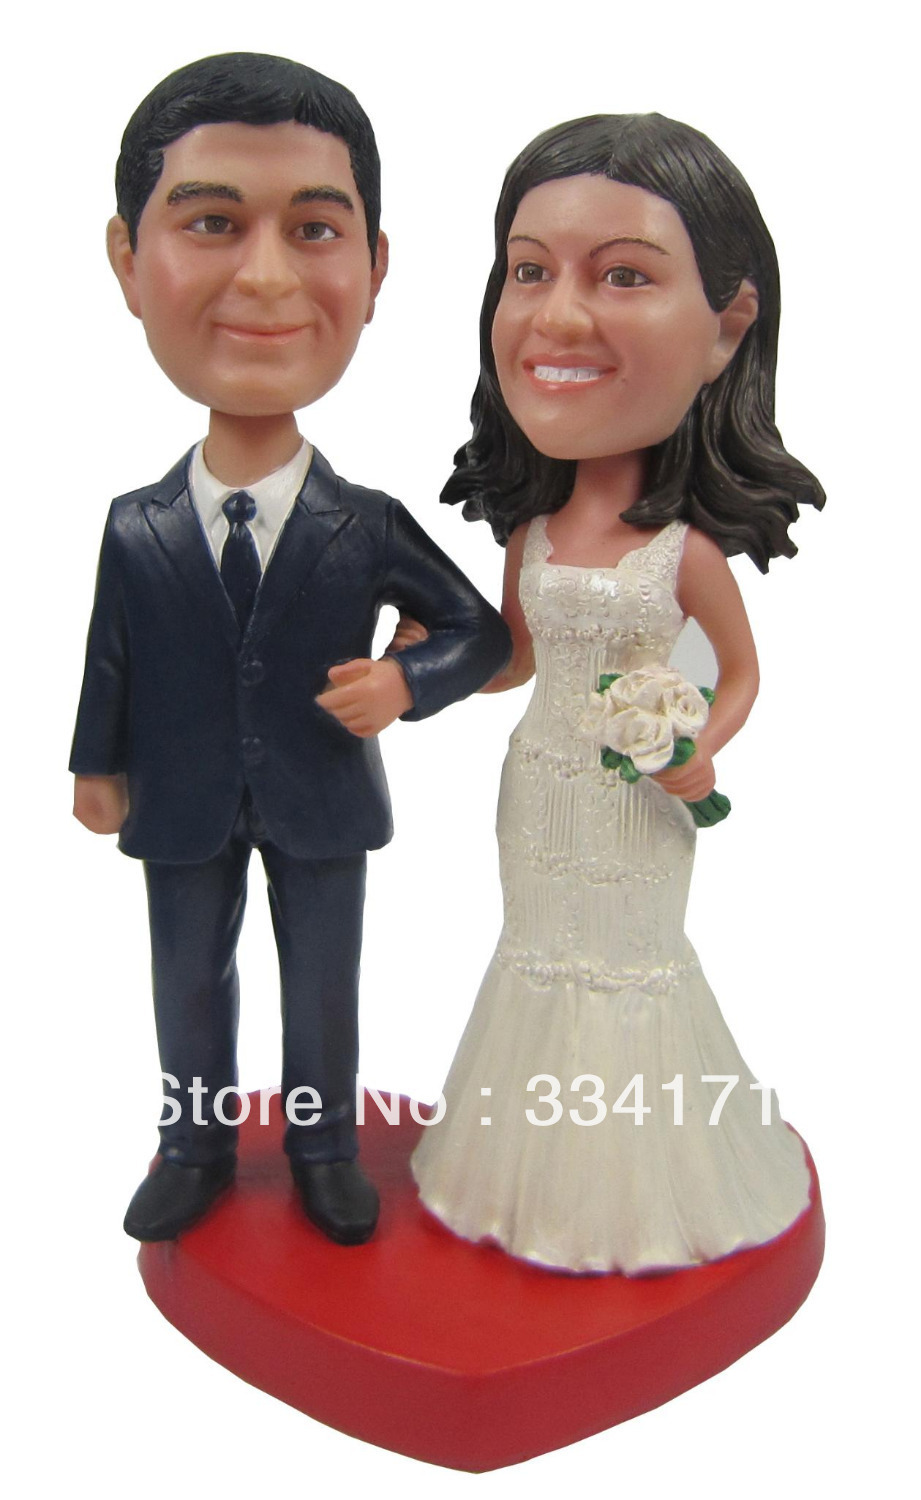 Fedex free shipping Personalized bobblehead doll bride and groom wedding gift wedding decoration polyresinFedex free shipping Personalized bobblehead doll bride and groom wedding gift wedding decoration polyresin